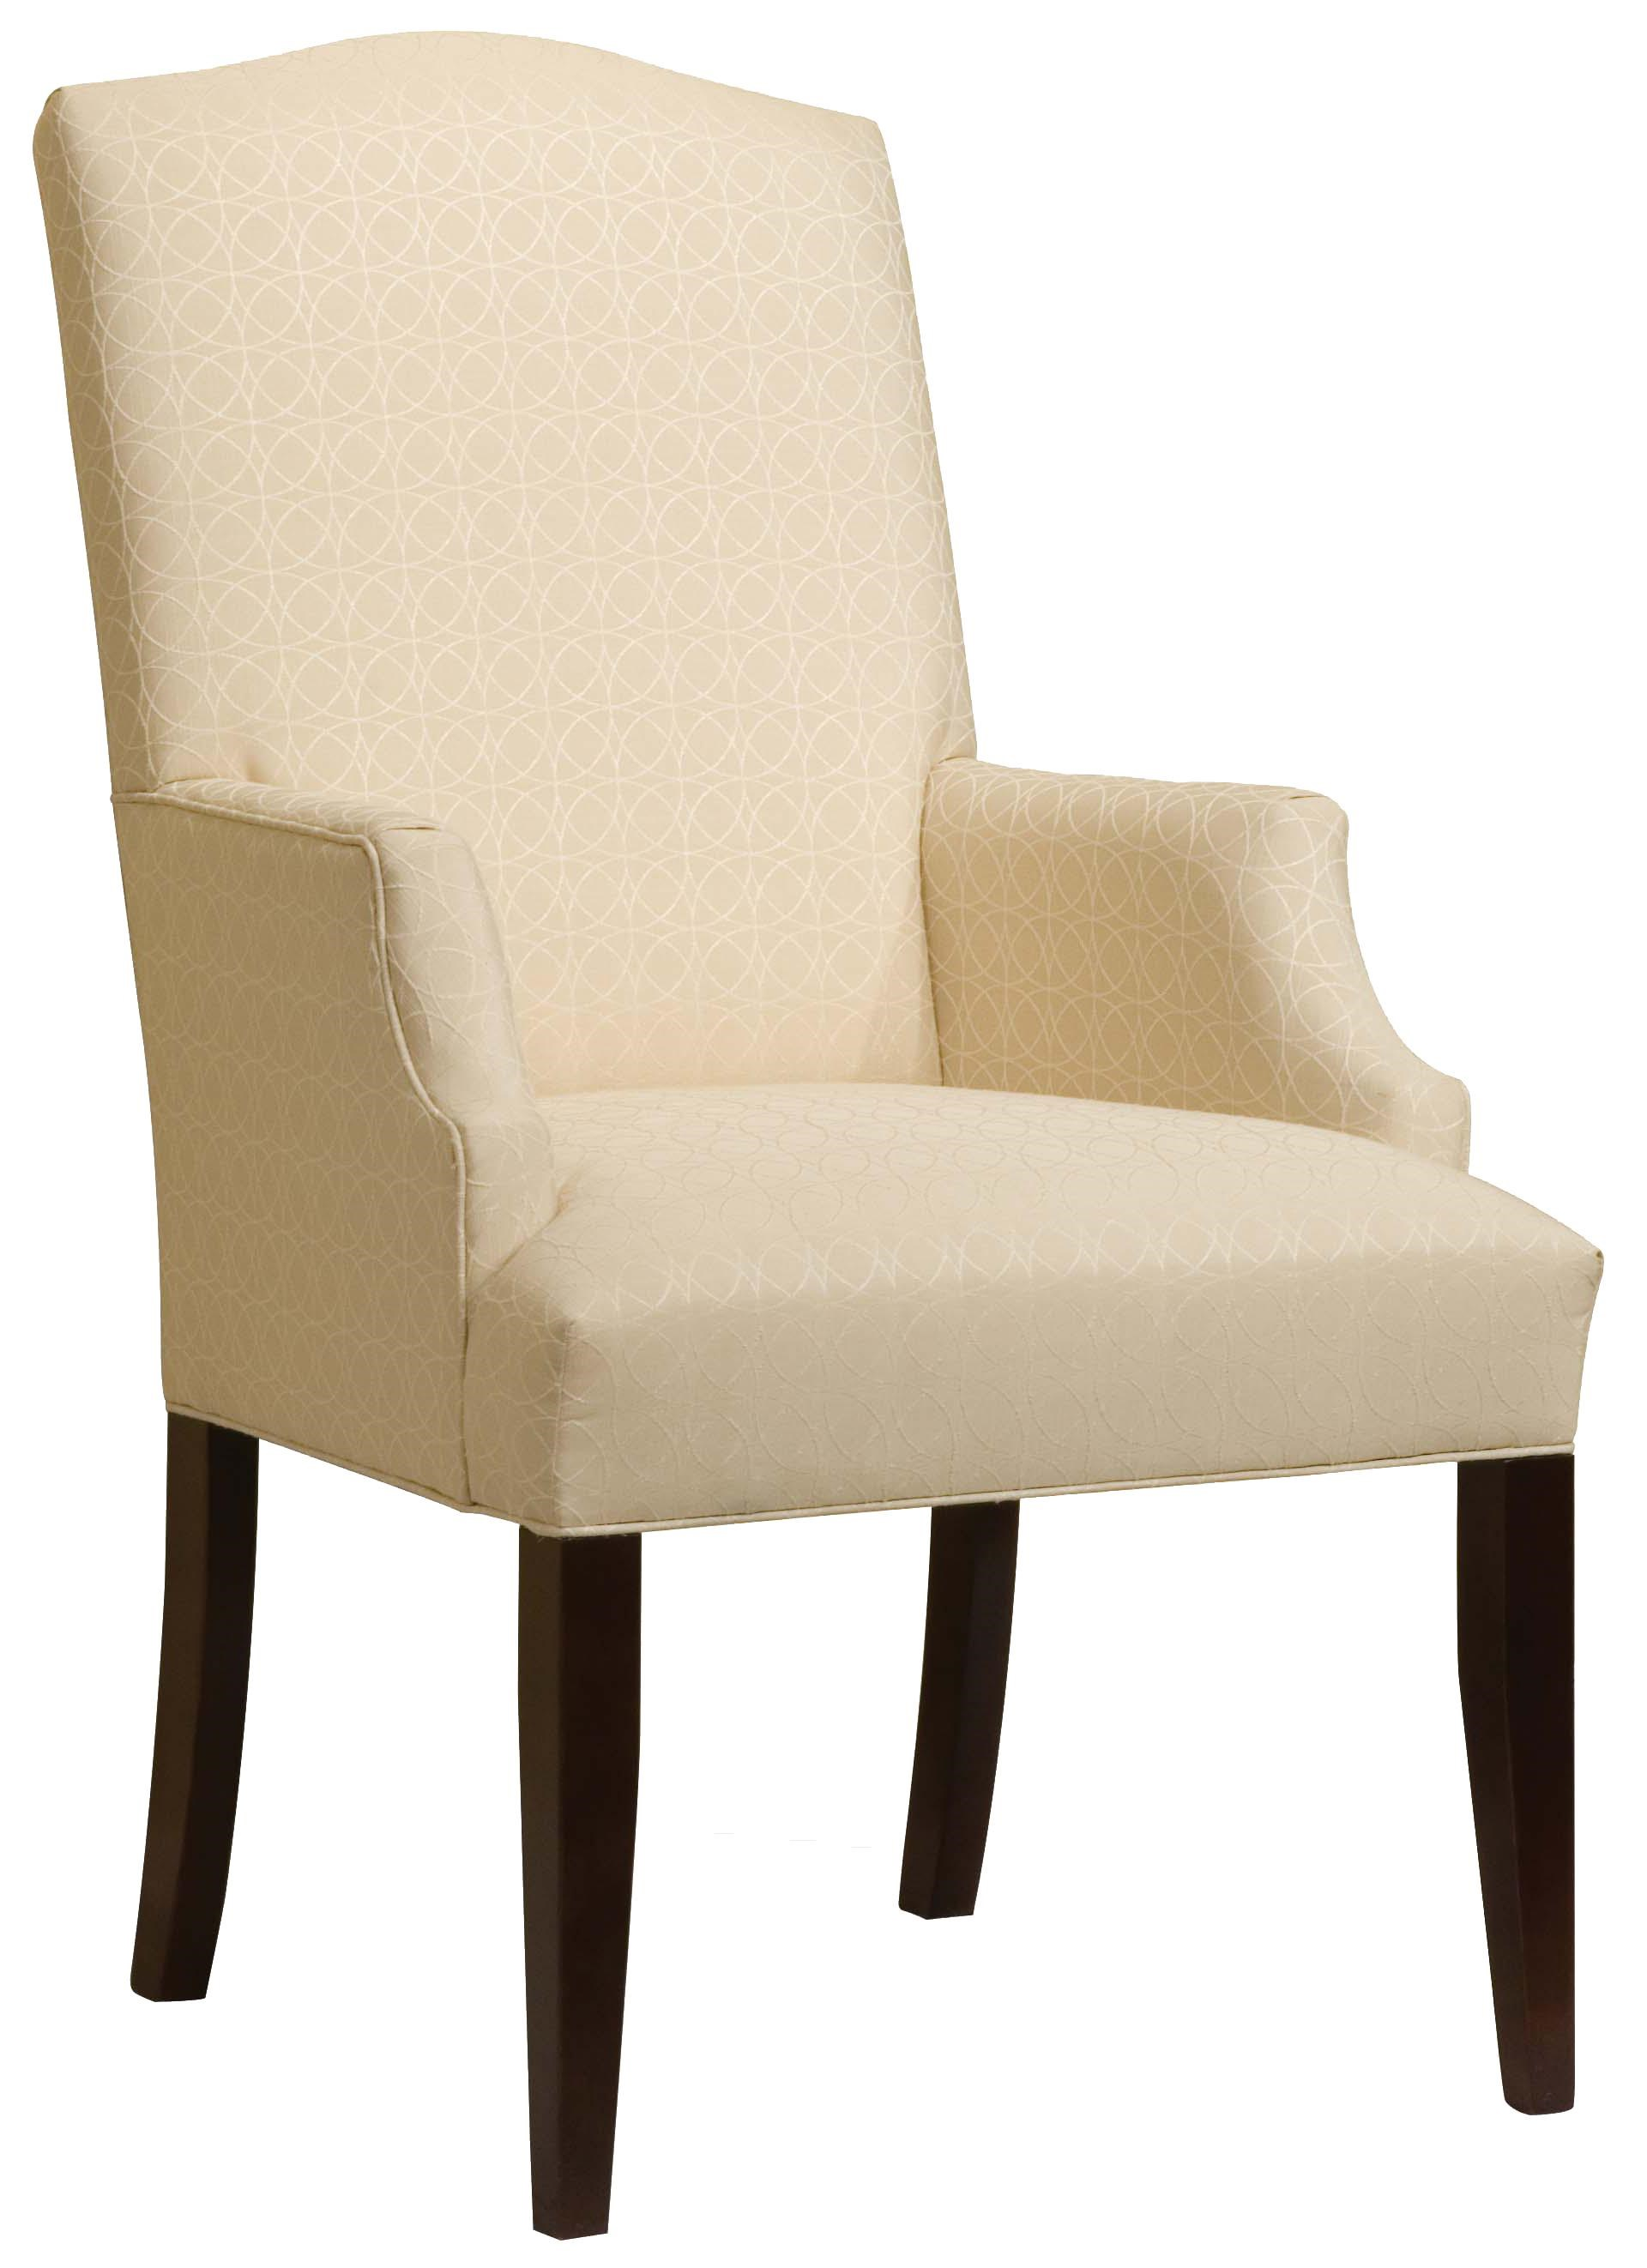 Accent Arm Chairs Chairs Upholstered Accent Arm Chair By Fairfield At Miller Home